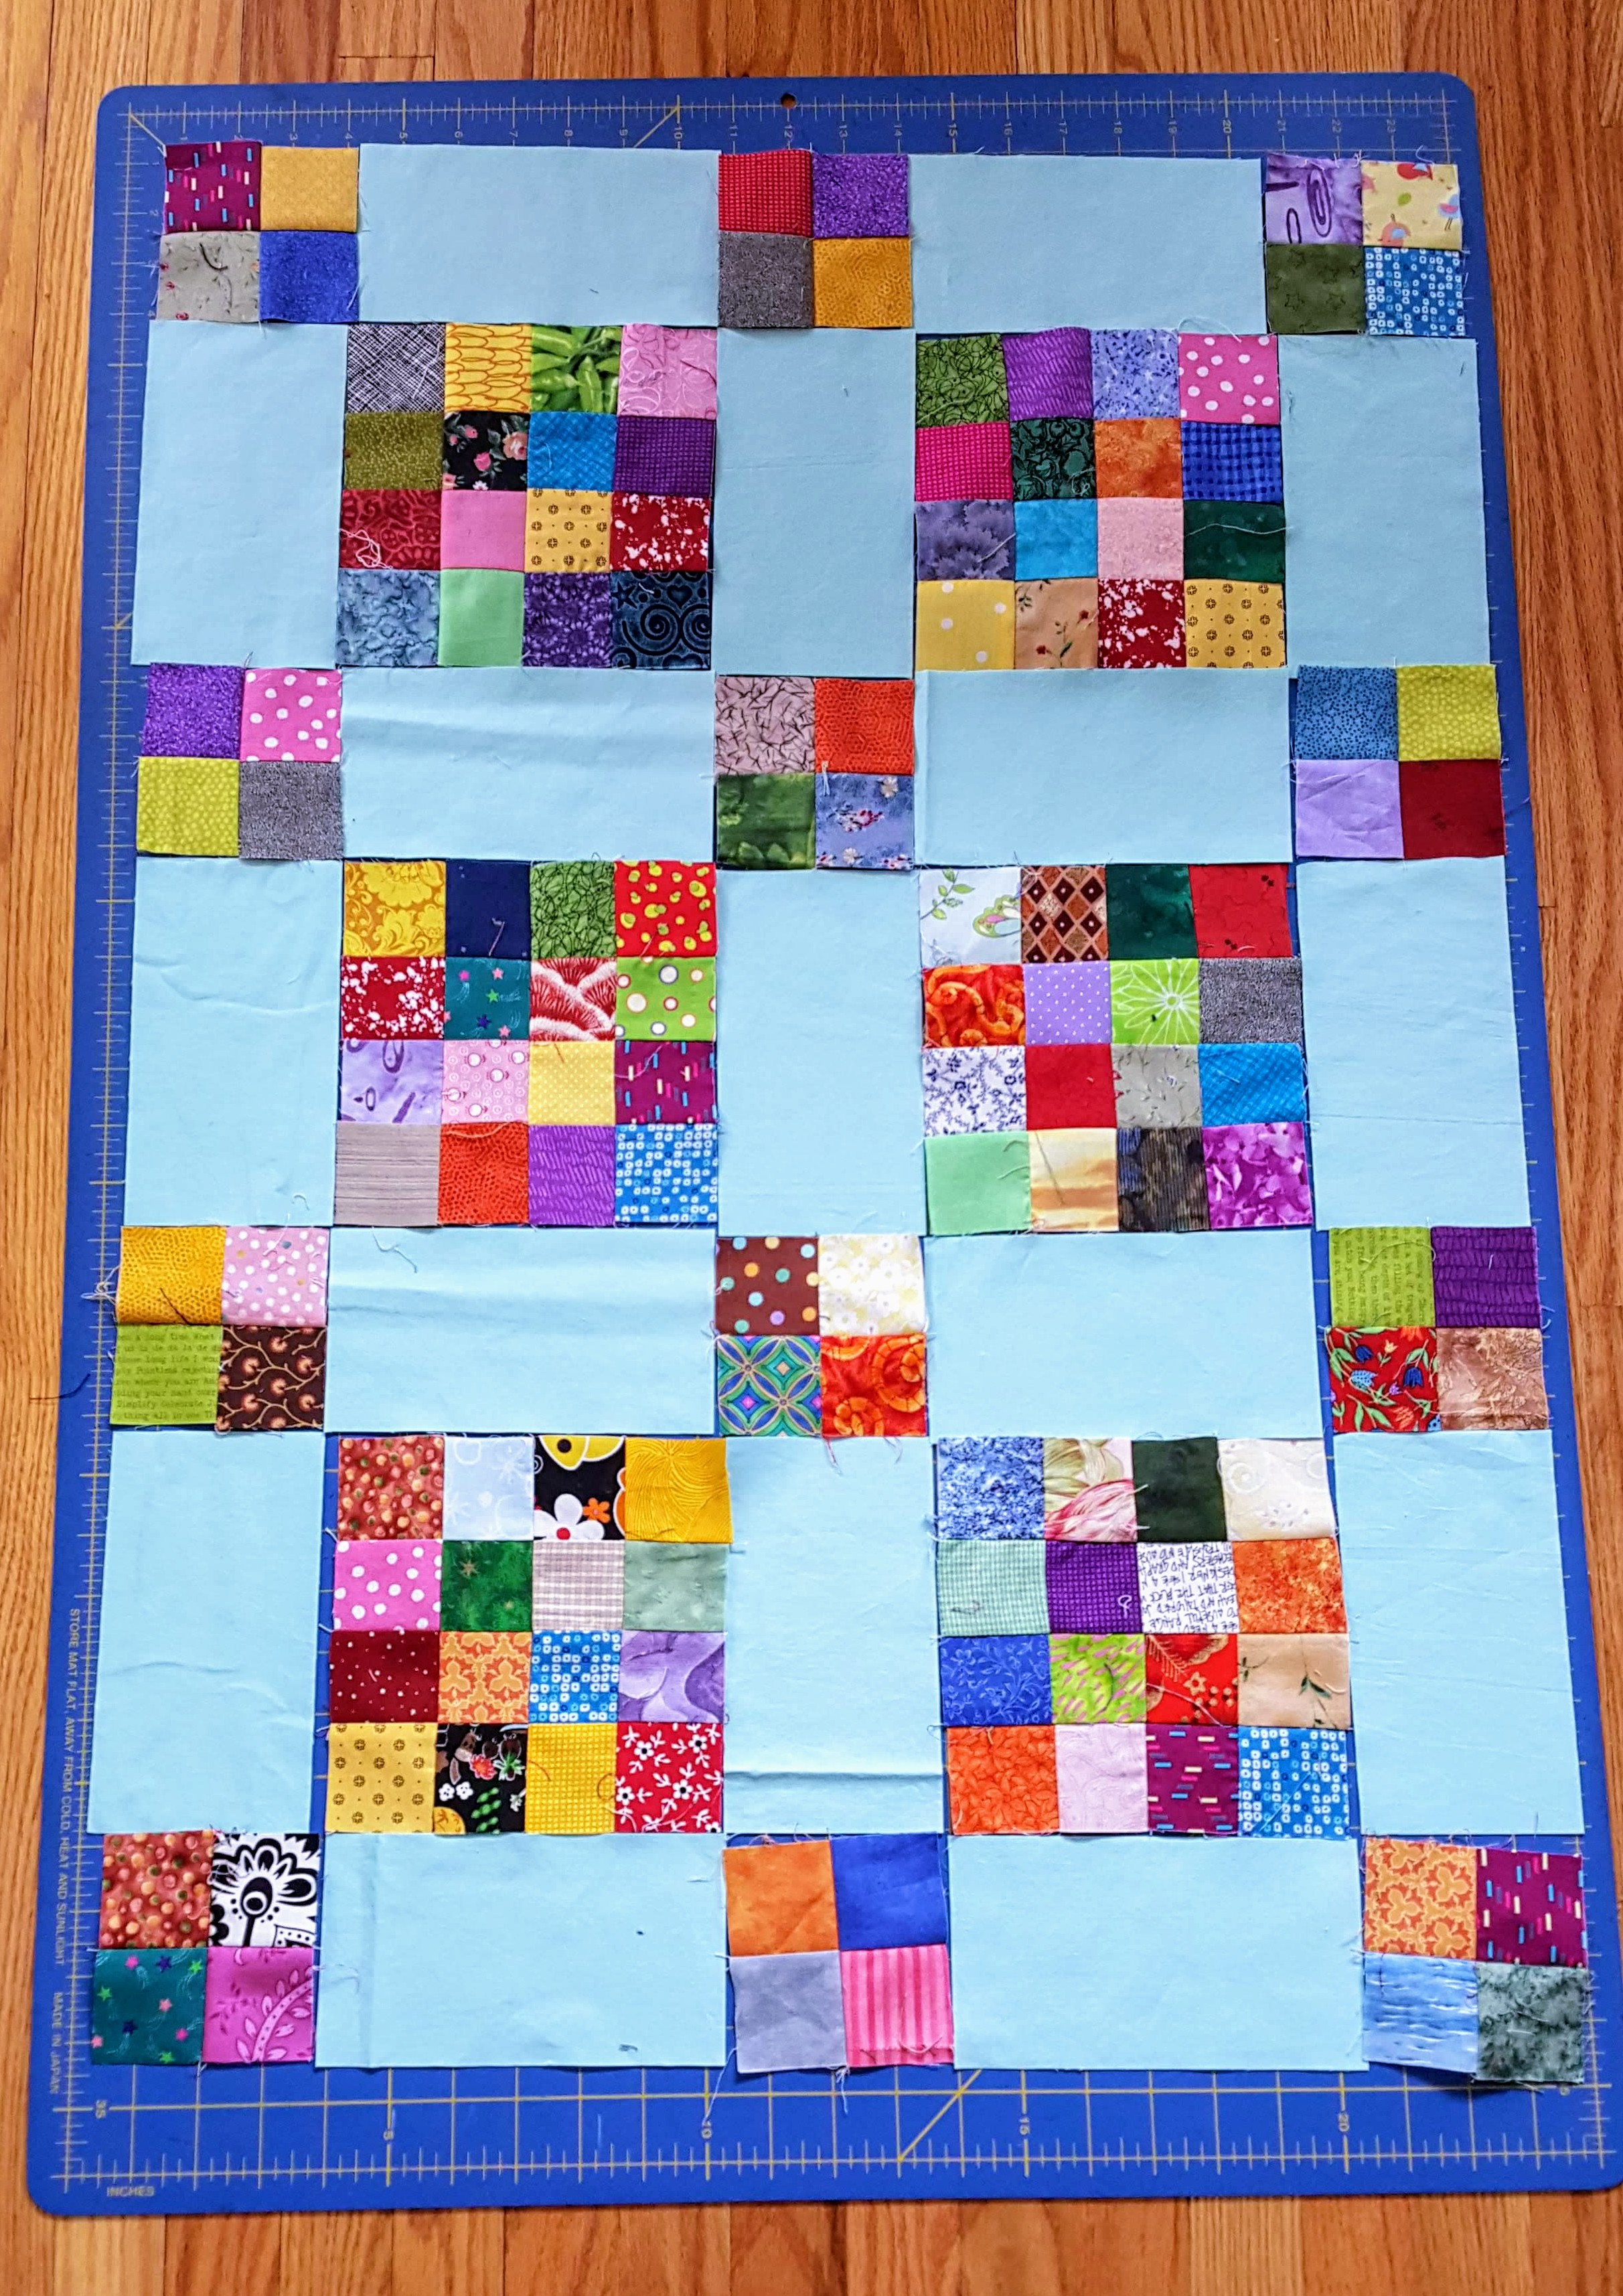 16 patches, 4 patches and sashing. Quilt layout audition. scrappy quilt